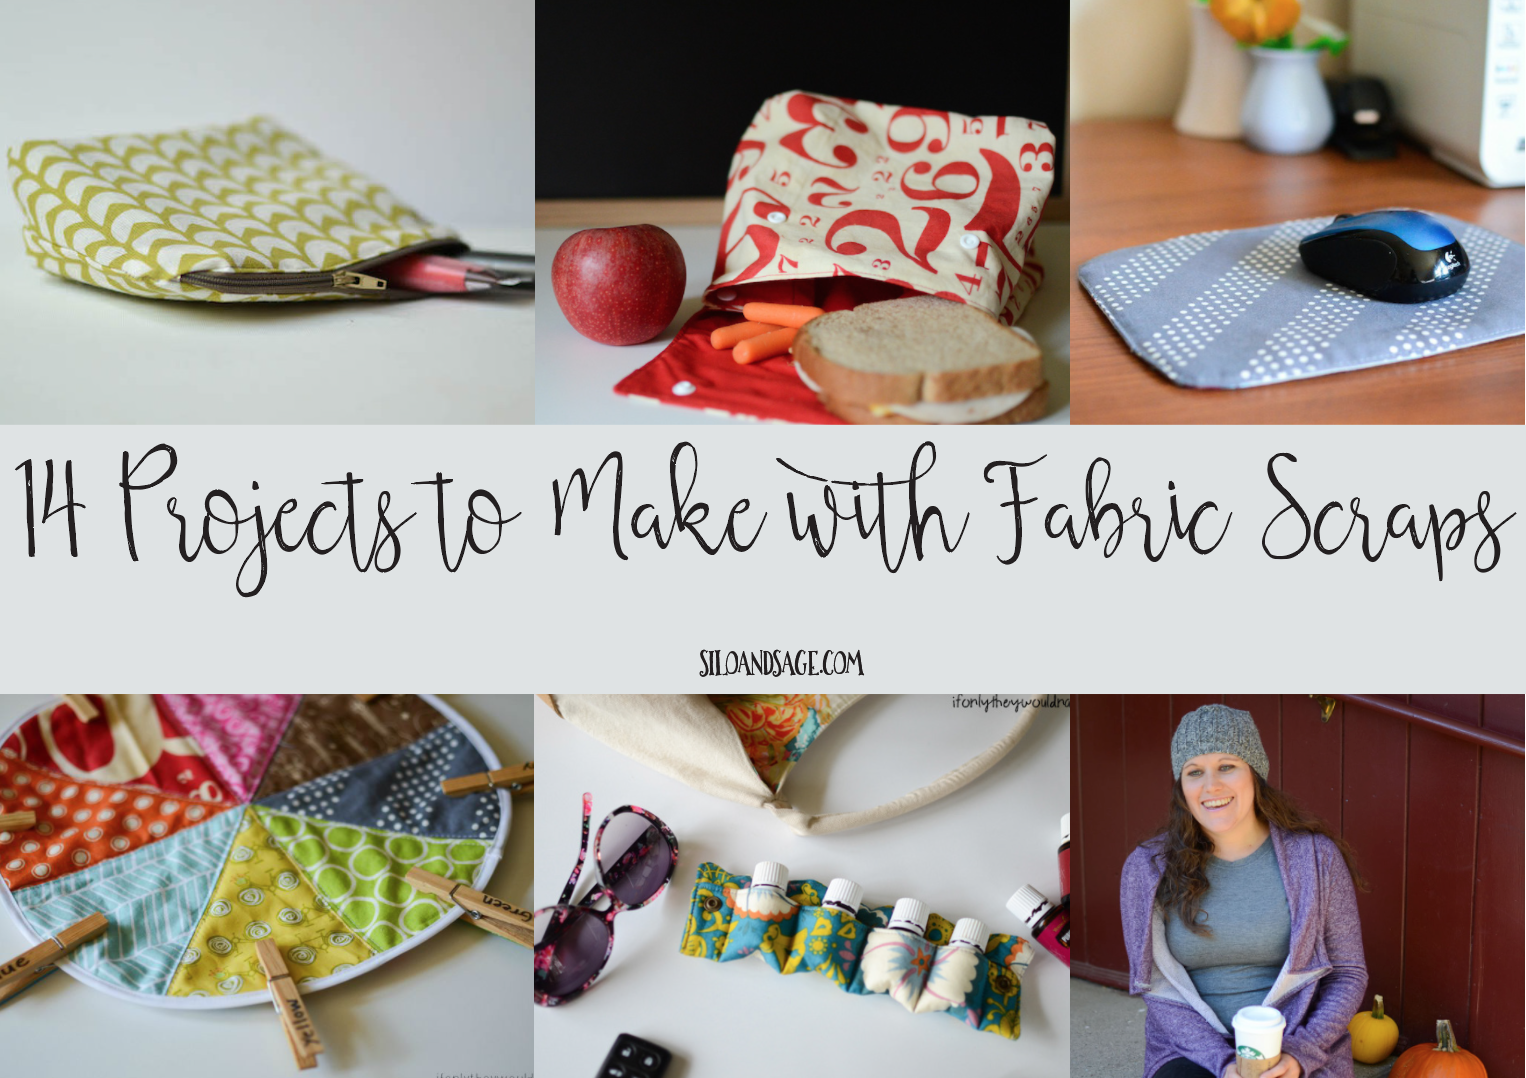 14 projects to make with fabric scraps